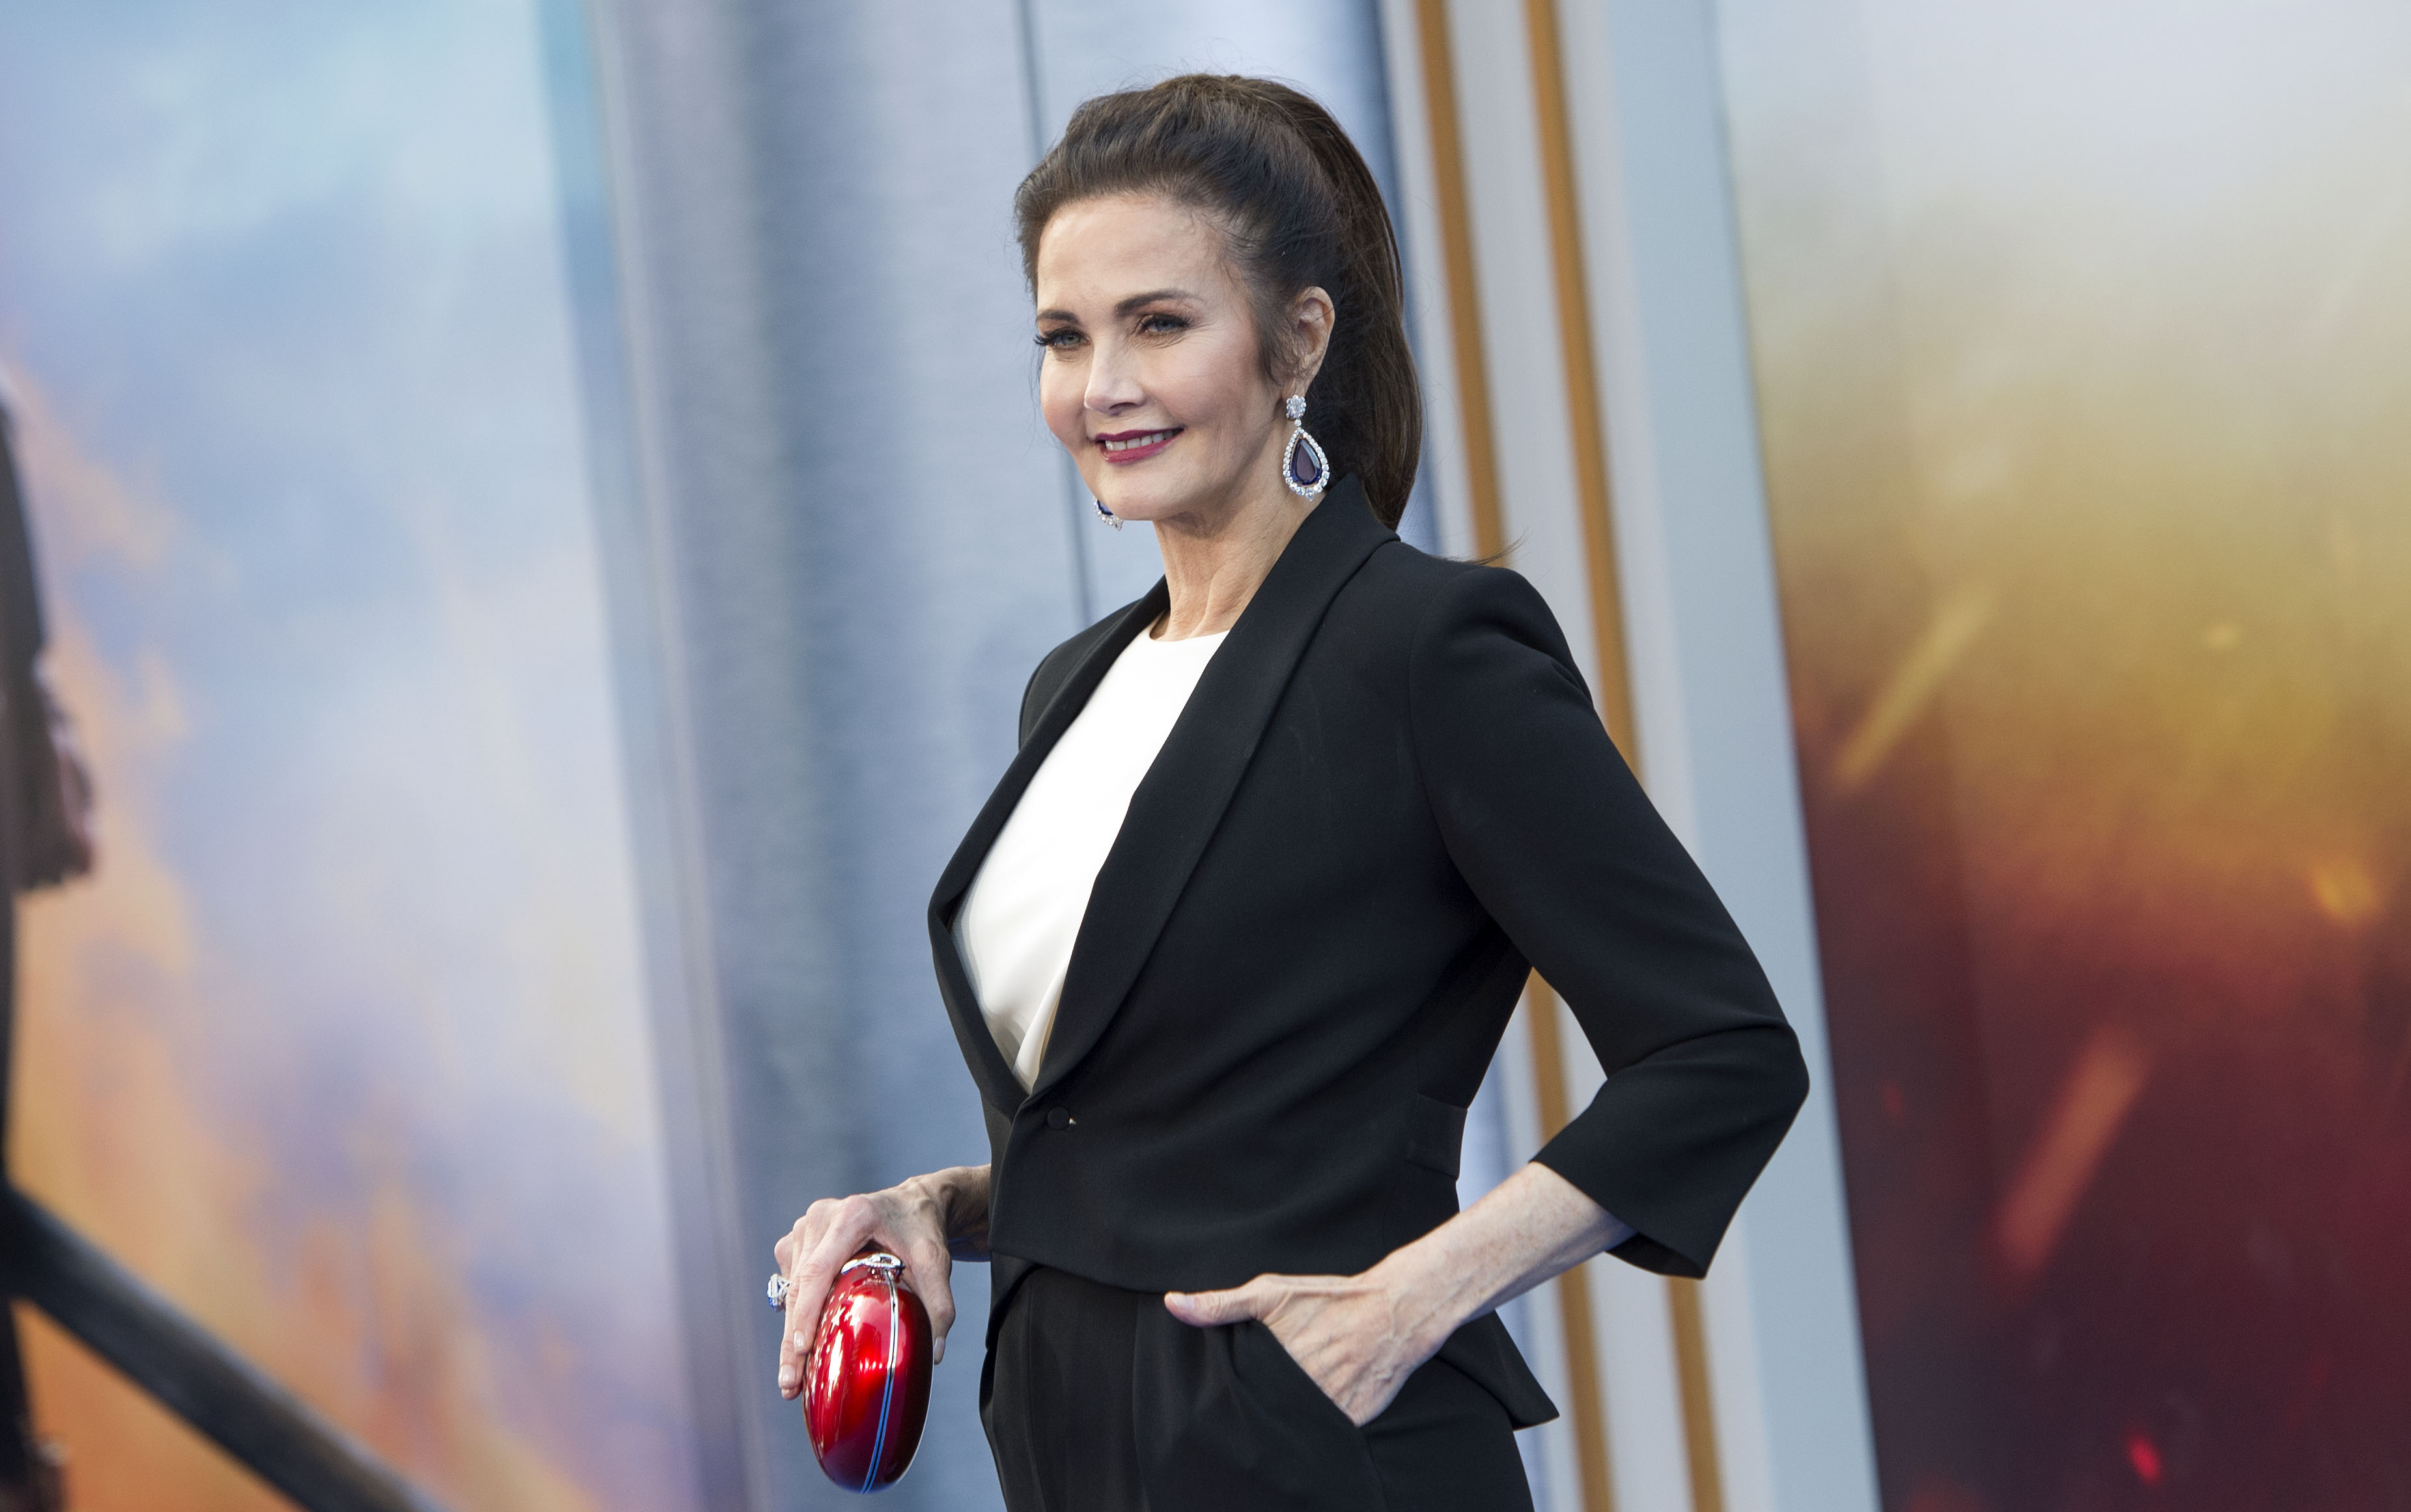 Actress Lynda Carter attends the world premiere of  Wonder Woman  at the Pantages on May 25, 2017 in Hollywood, California. / AFP PHOTO / VALERIE MACON        (Photo credit should read VALERIE MACON/AFP/Getty Images)